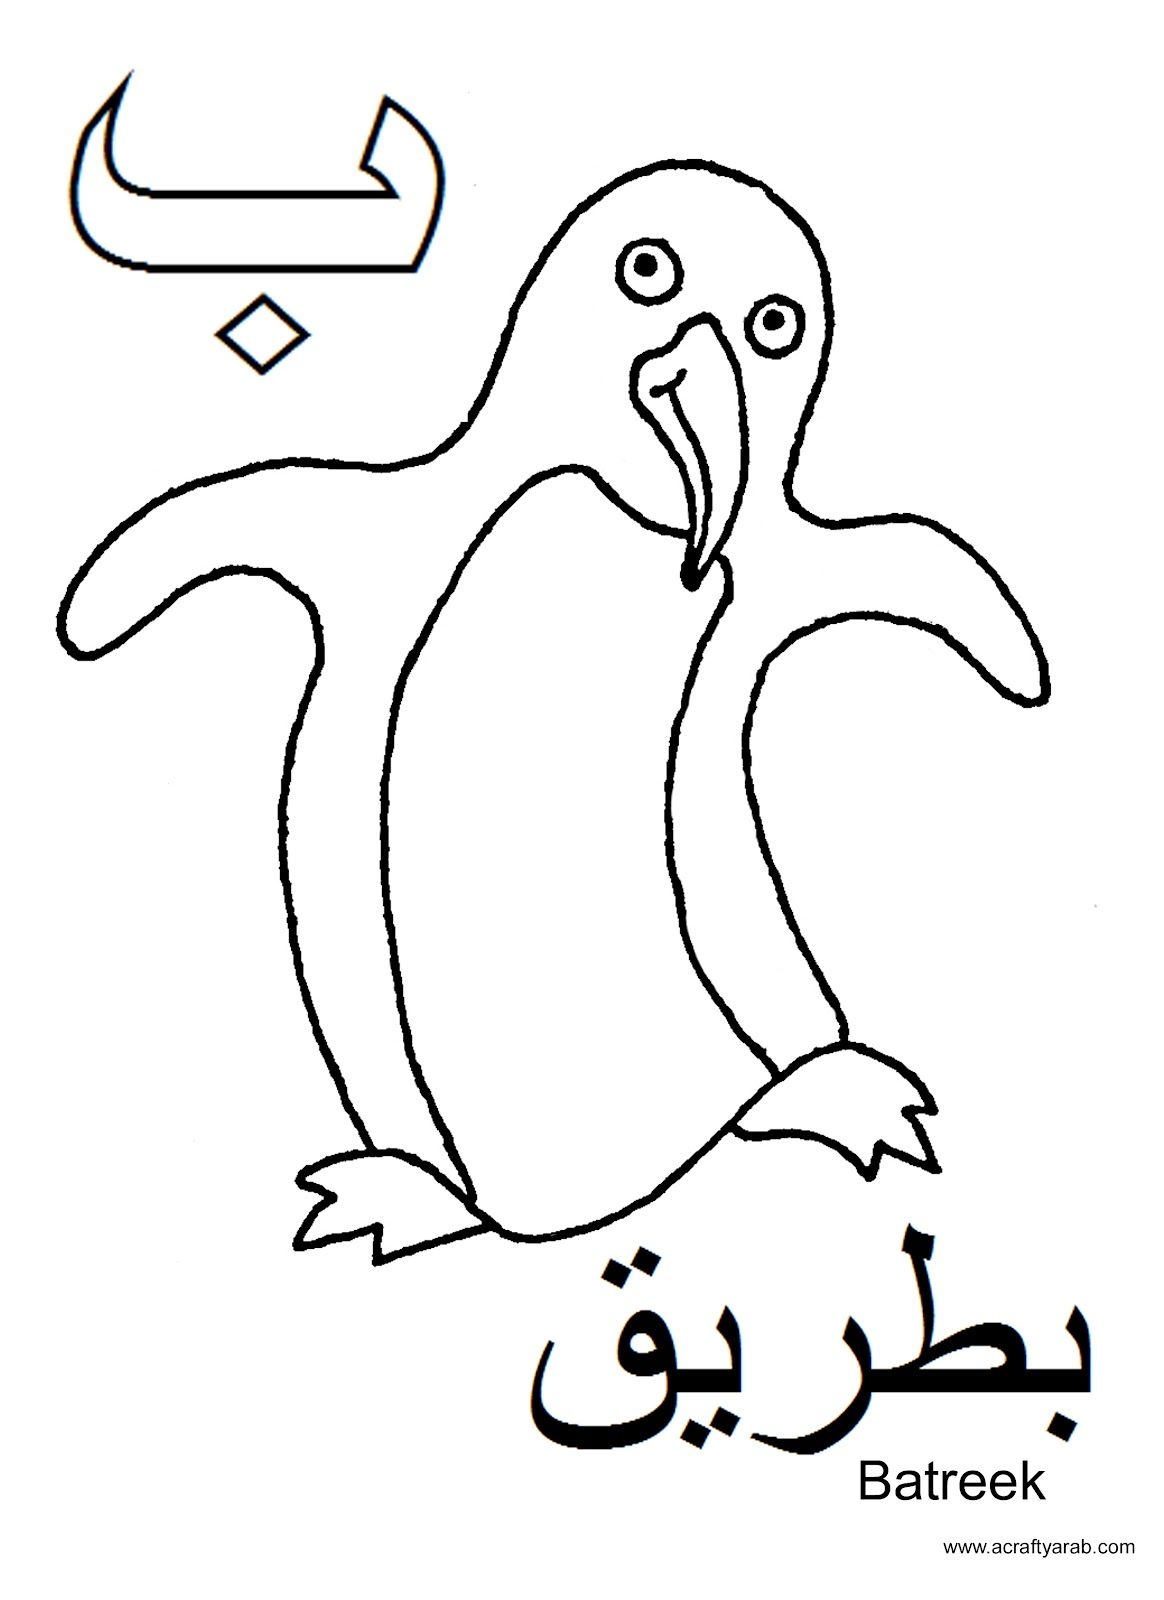 A Crafty Arab Arabic Alphabet Coloring PagesBaa Is For Batreek